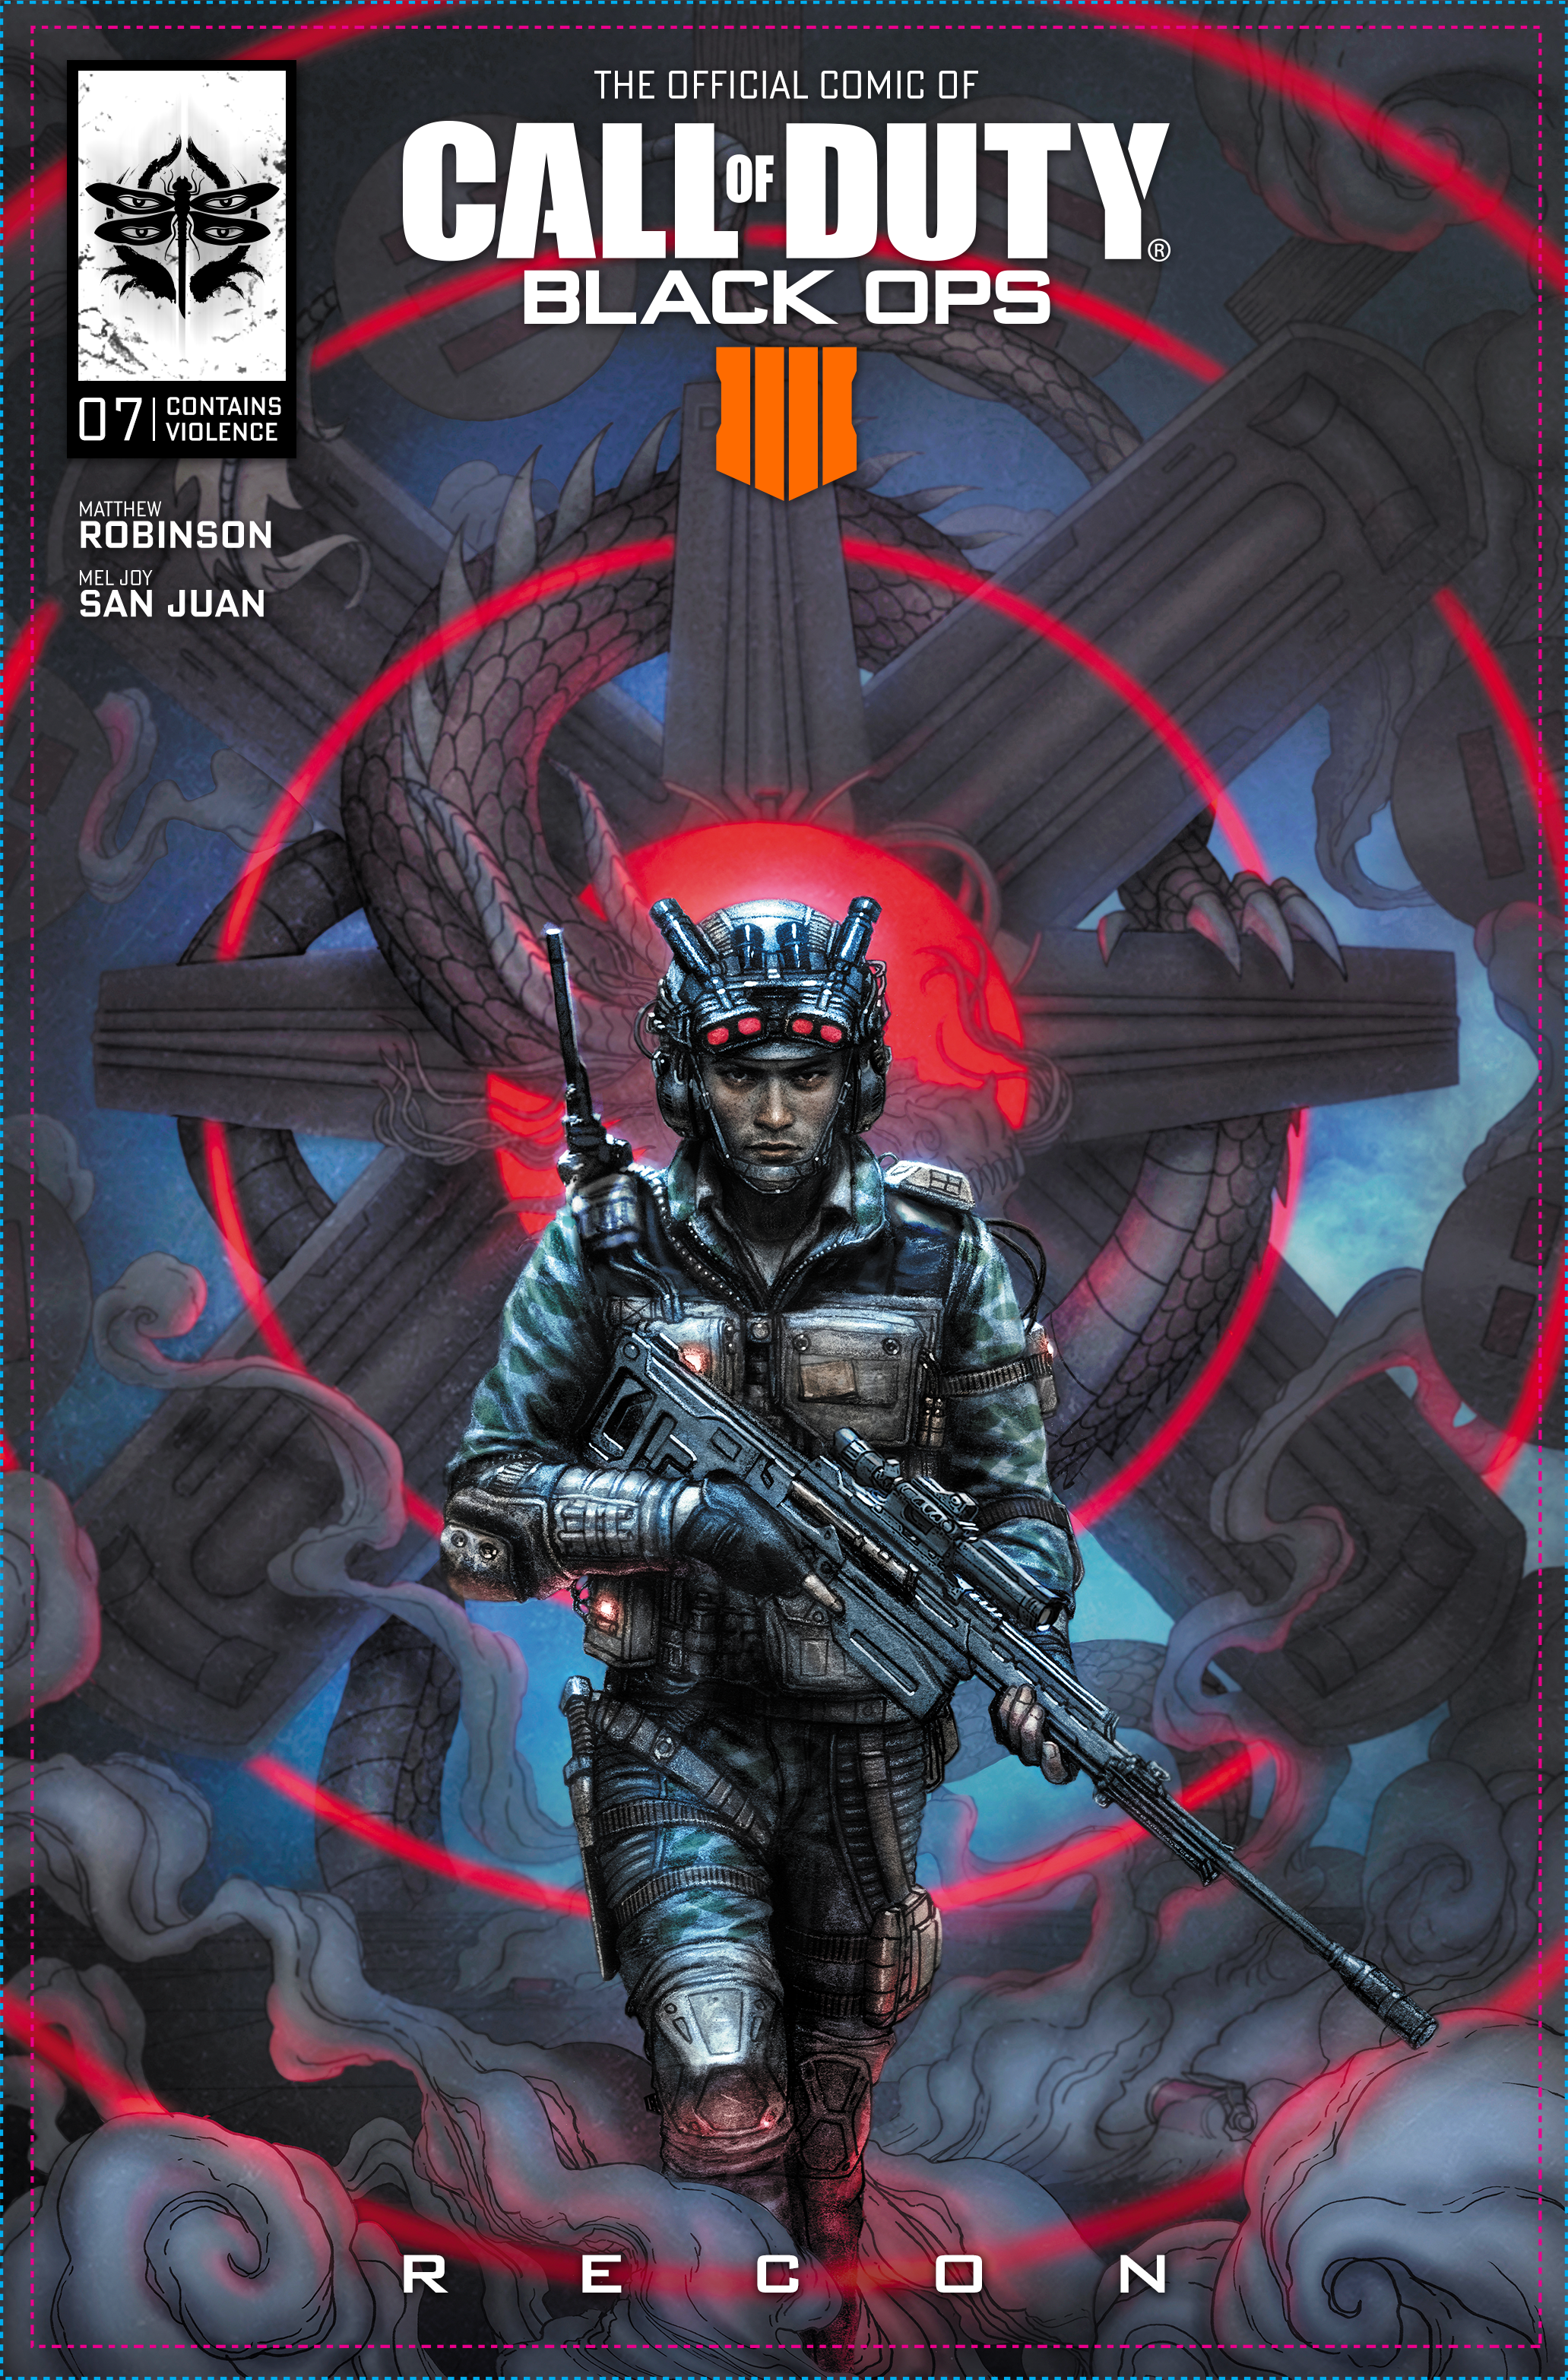 New Call Of Duty Black Ops 4 Artwork For 2018 2019 See Cod 4